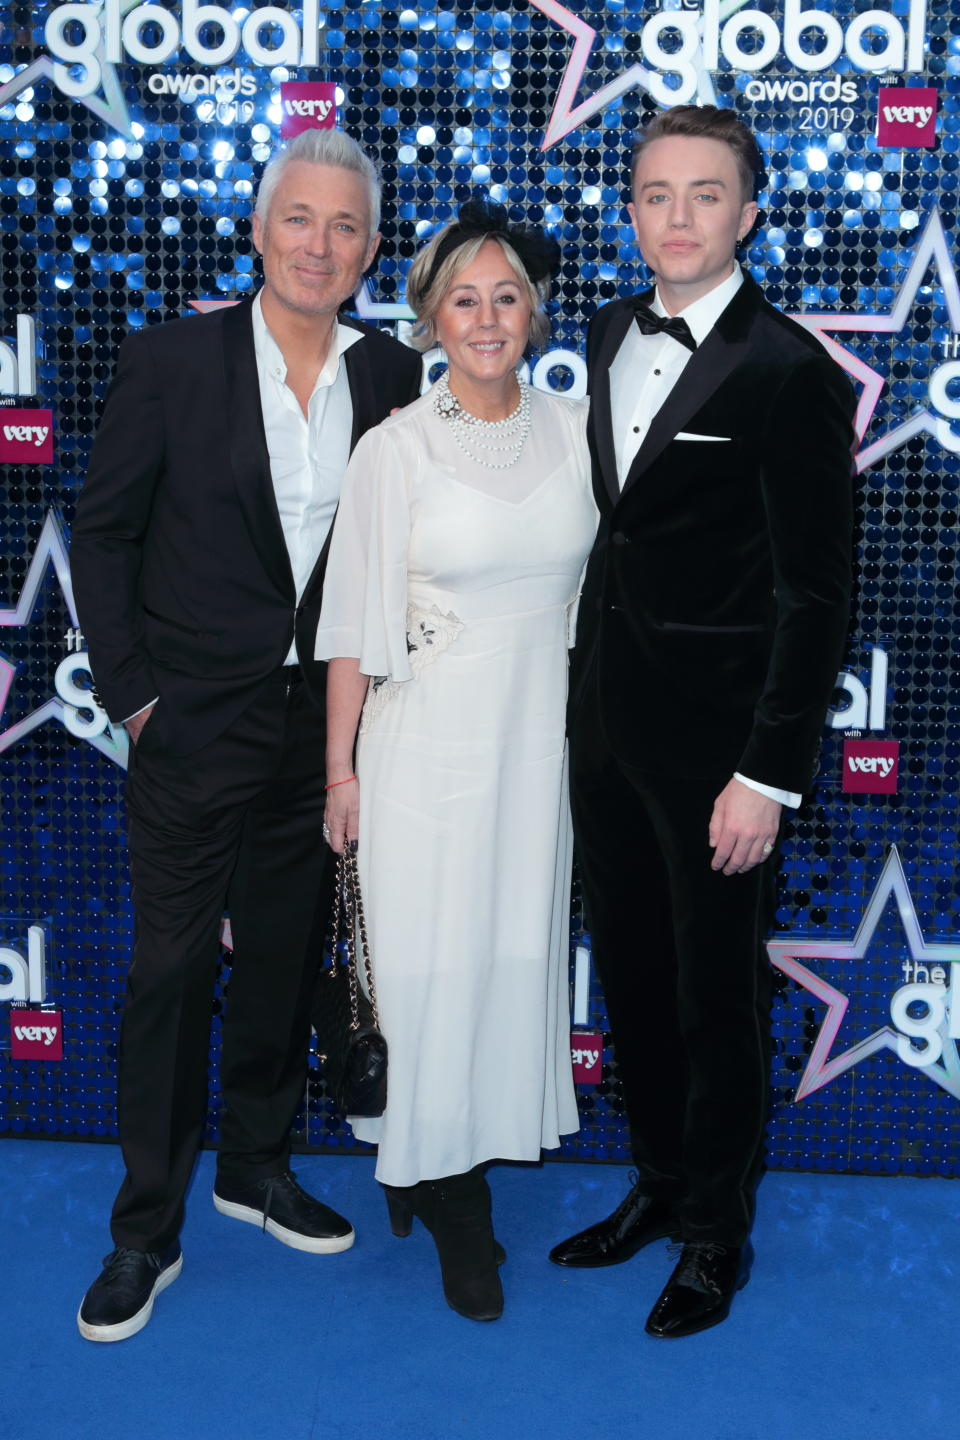 Martin Kemp, Shirlie Holliman and Roman Kemp arrives at the 2019 Global Awards art The Apollo Hammersmith. (Jamy / Barcroft Images via Getty Images)